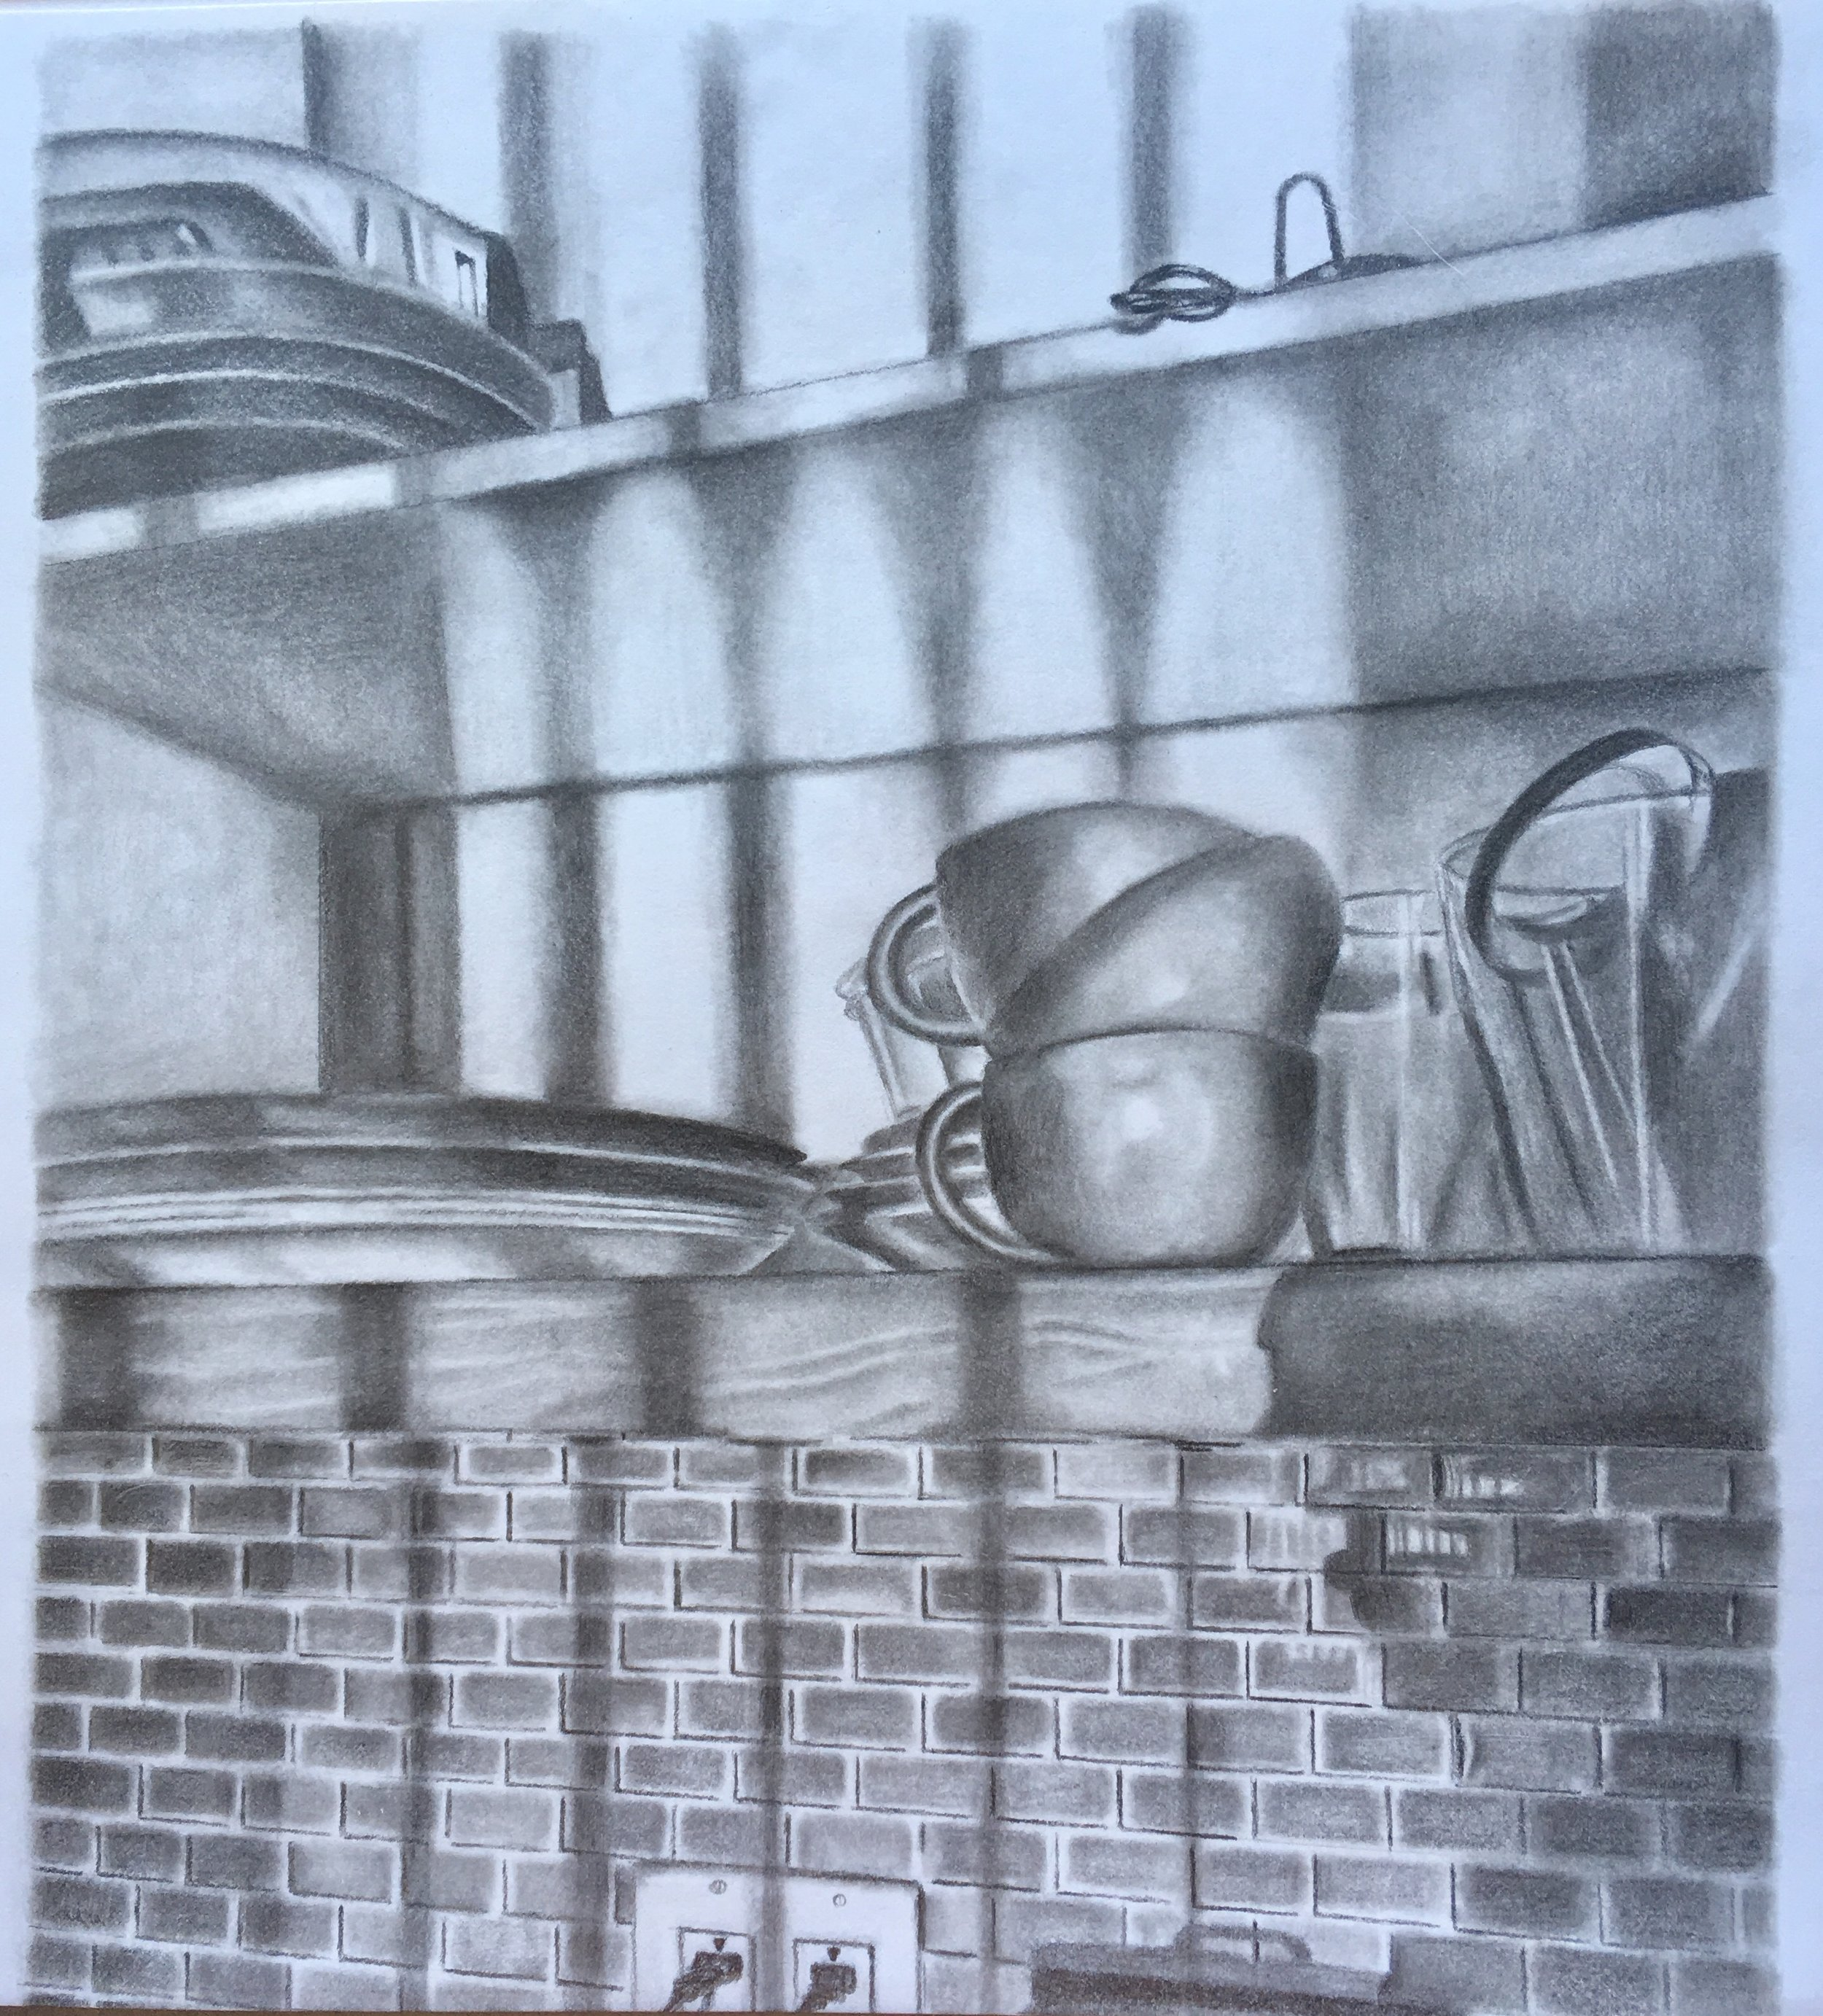 kitchen drawing.jpg